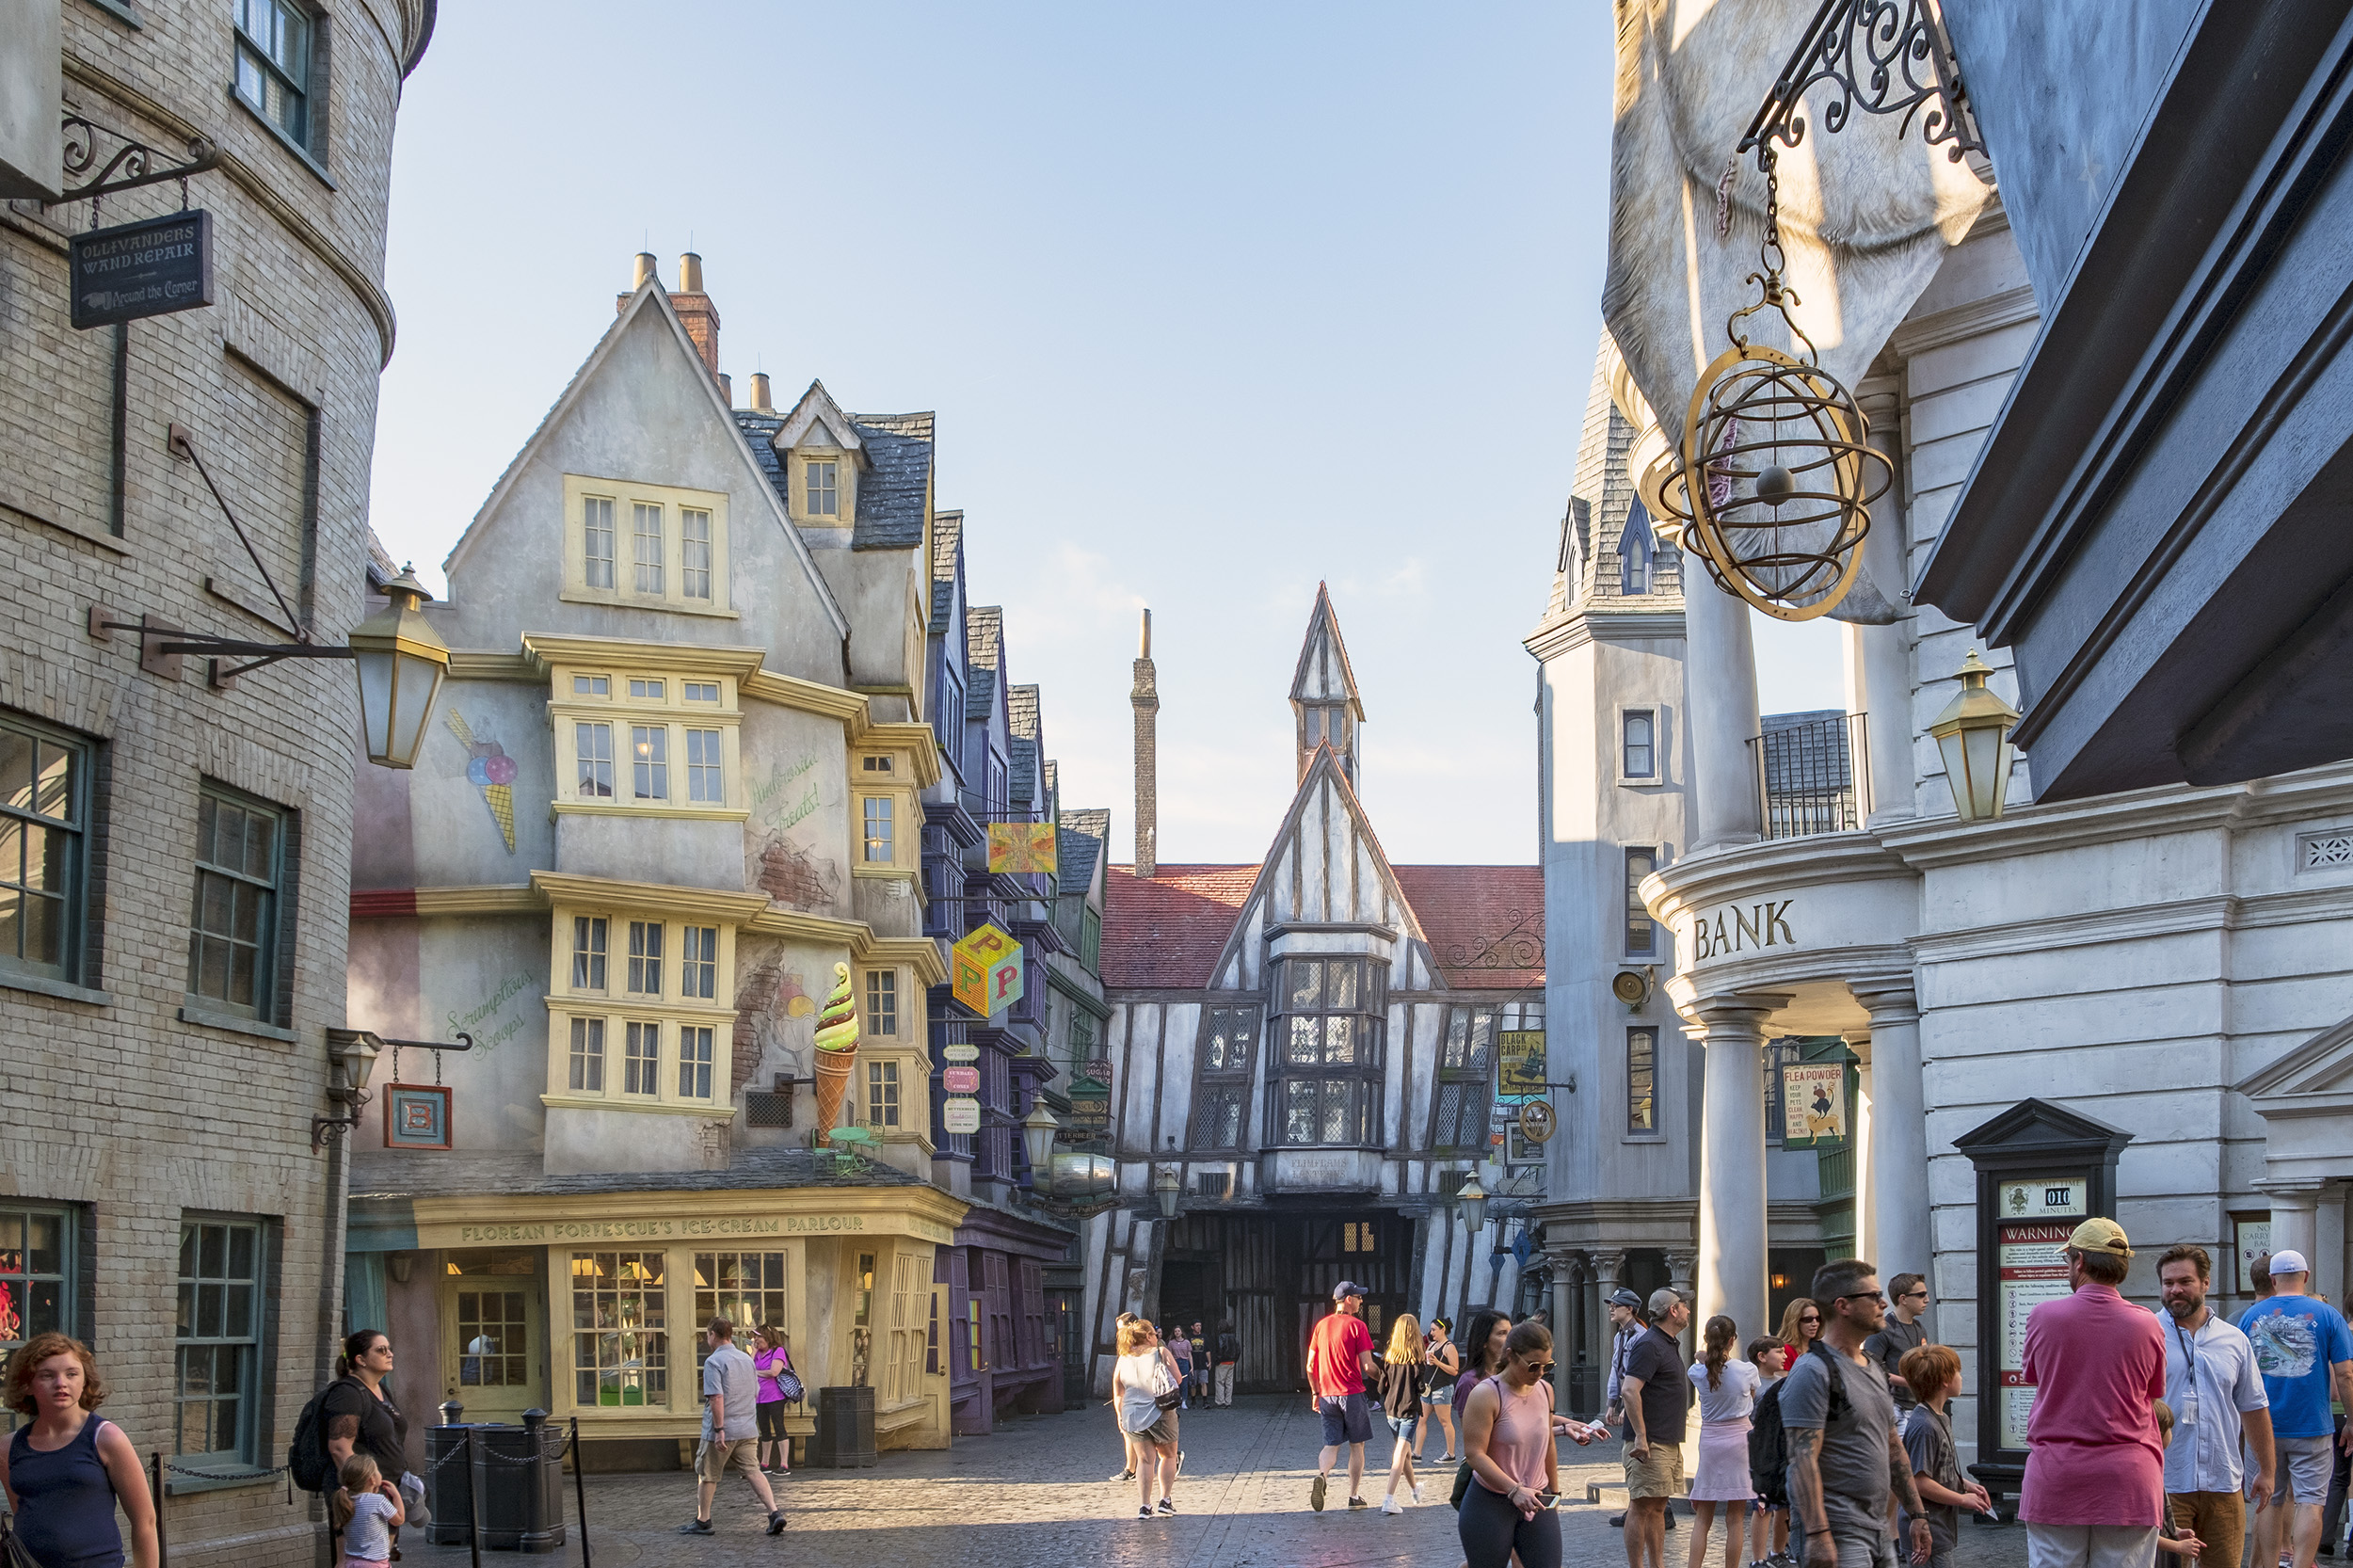 Diagon Alley. The Wizarding World of Harry Potter. Orlando.